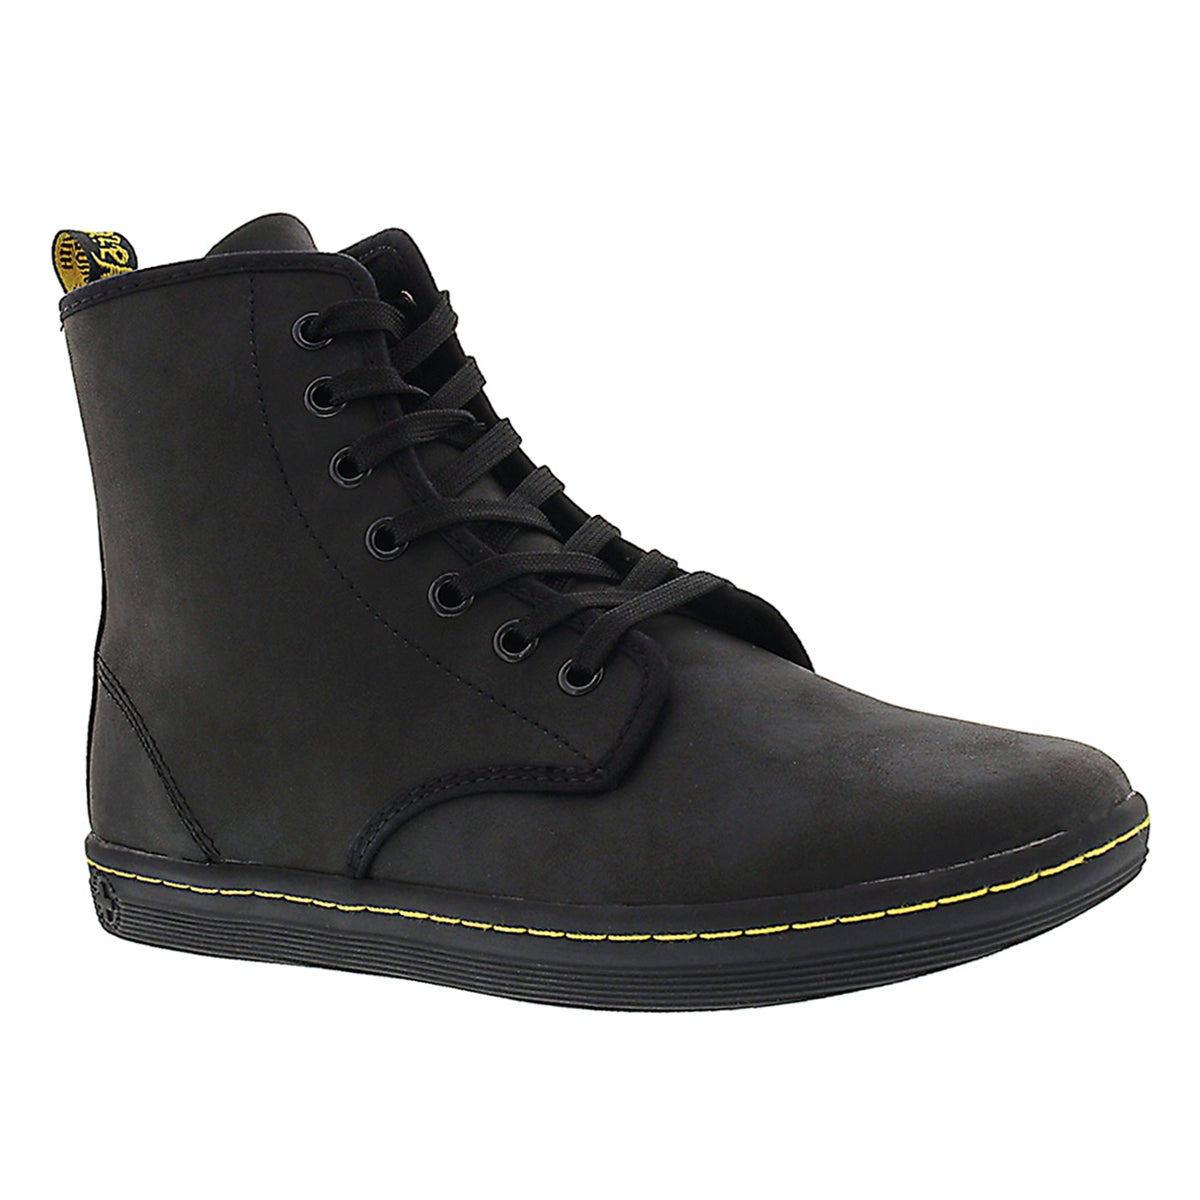 Women's SHOREDITCH black leather mid boots